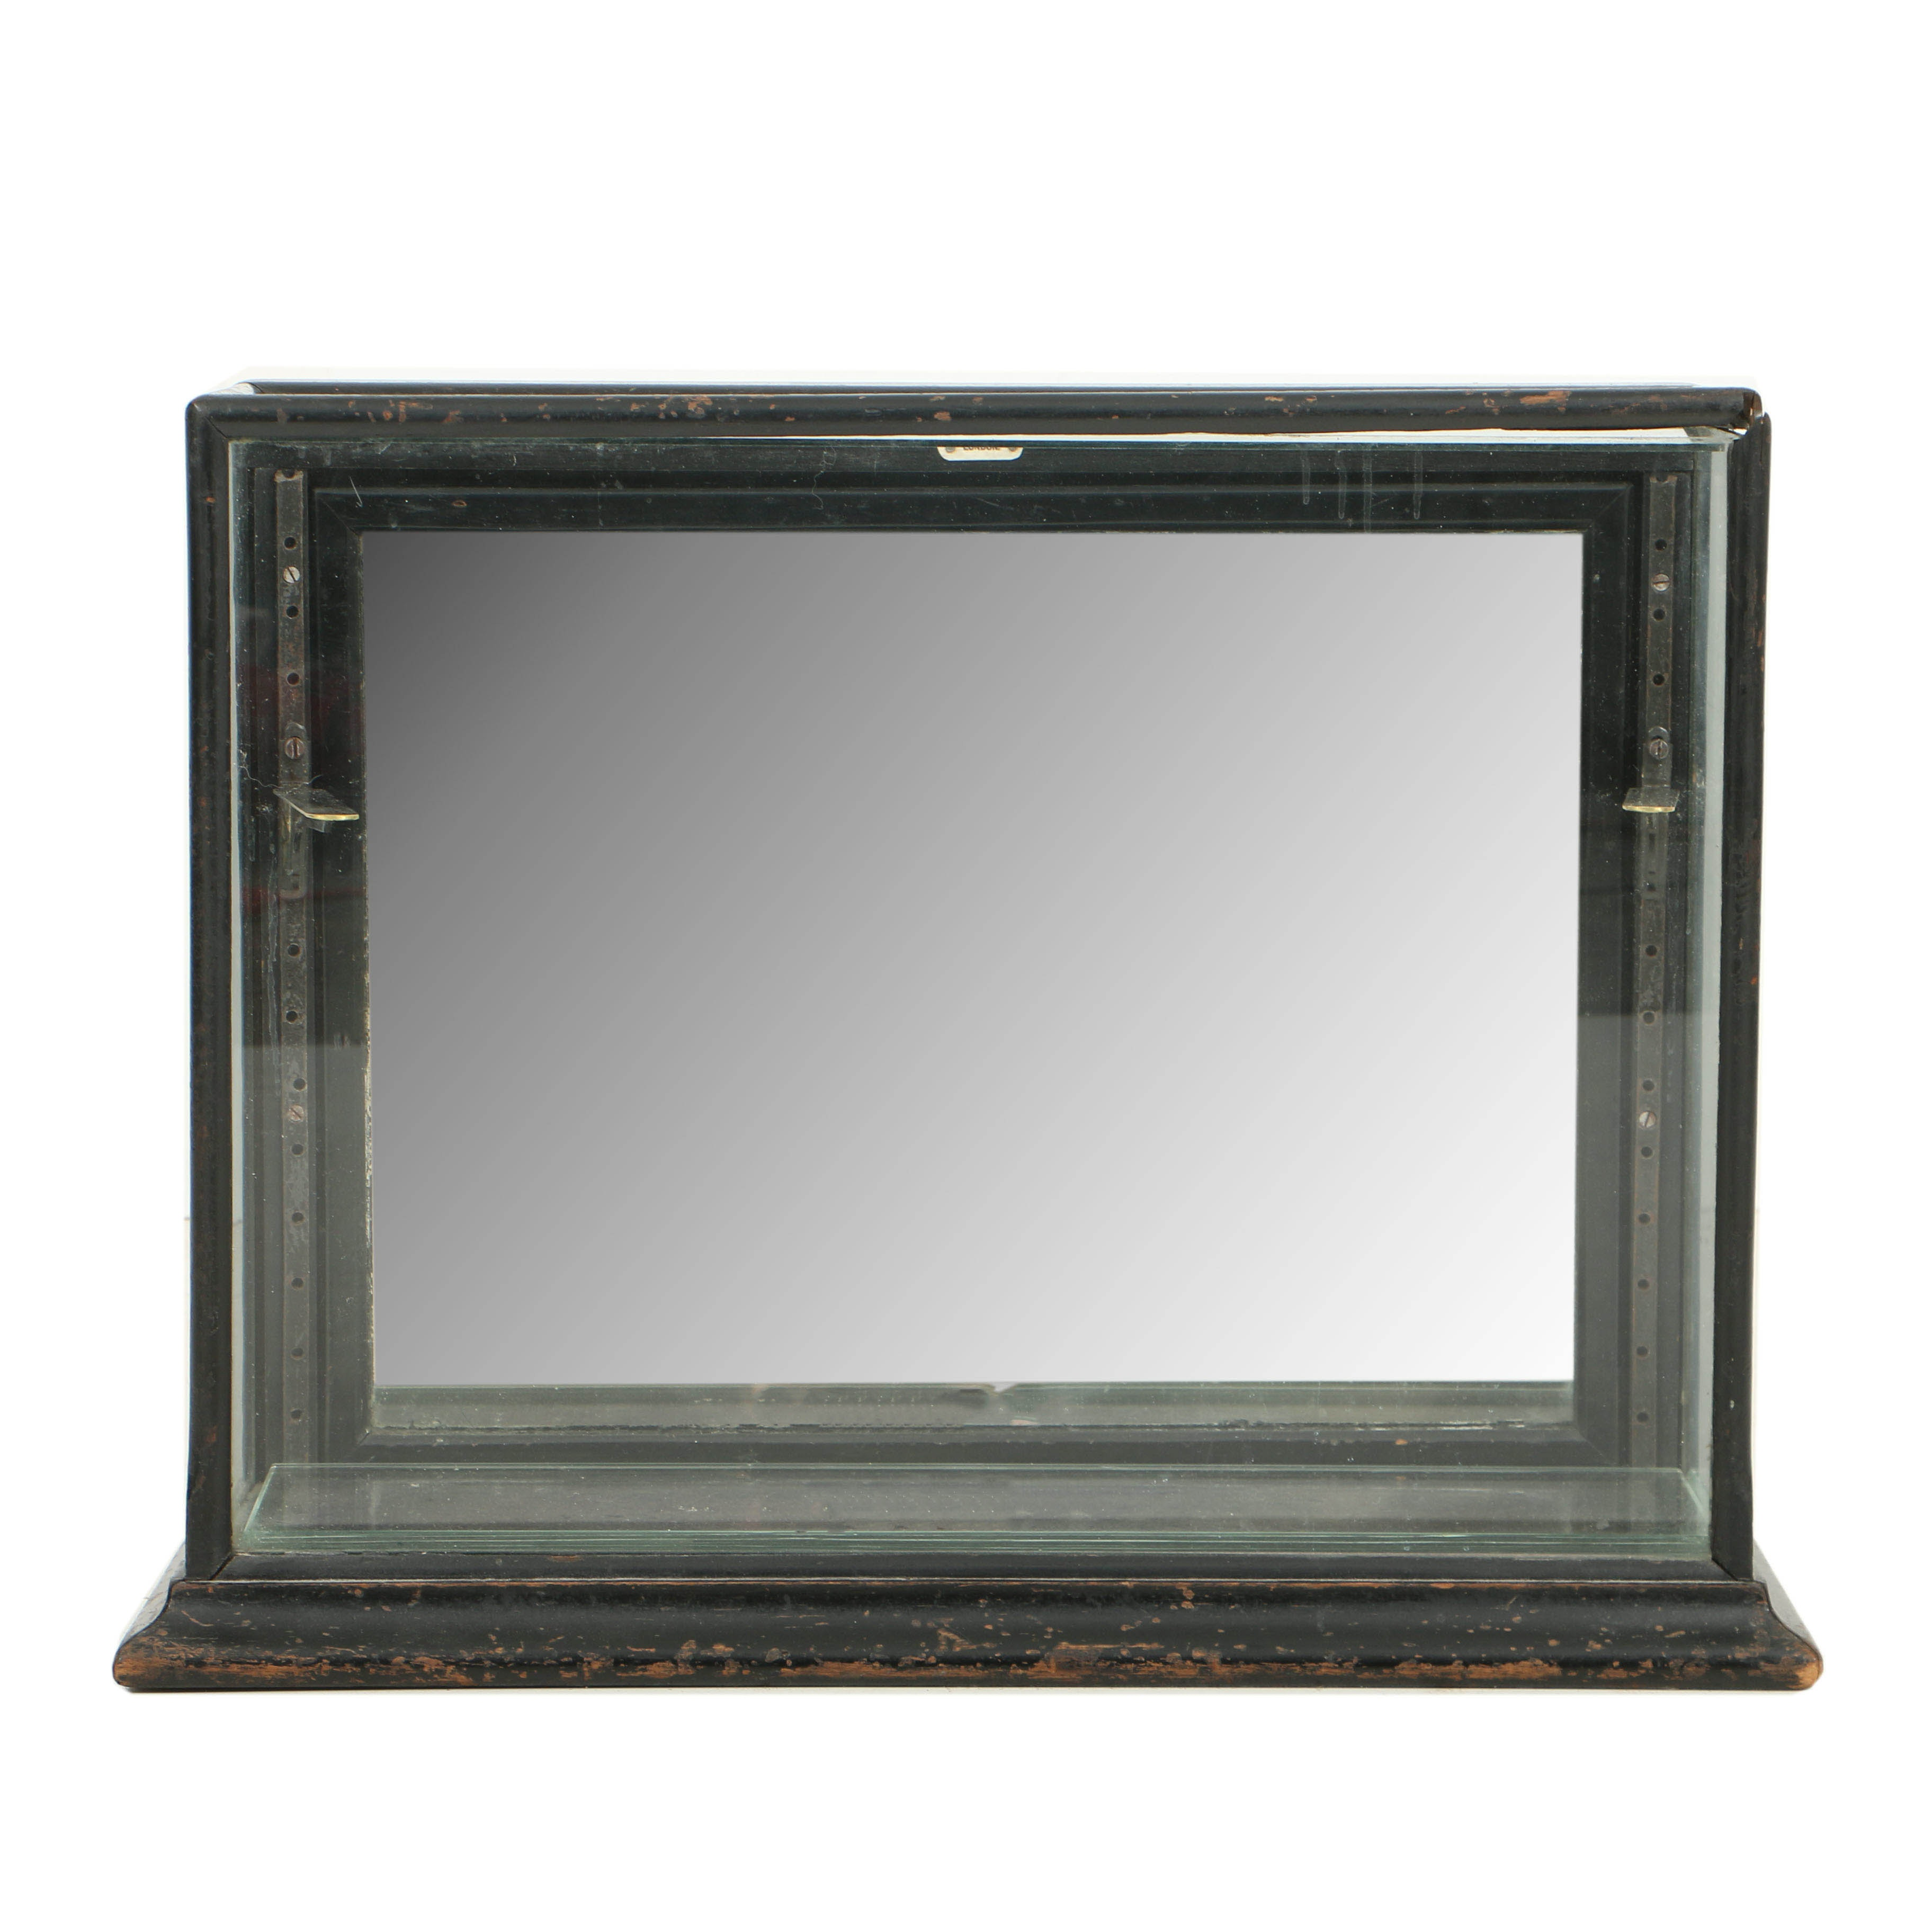 Antique Countertop Display Case by Potter & Sons of London, Circa 1900